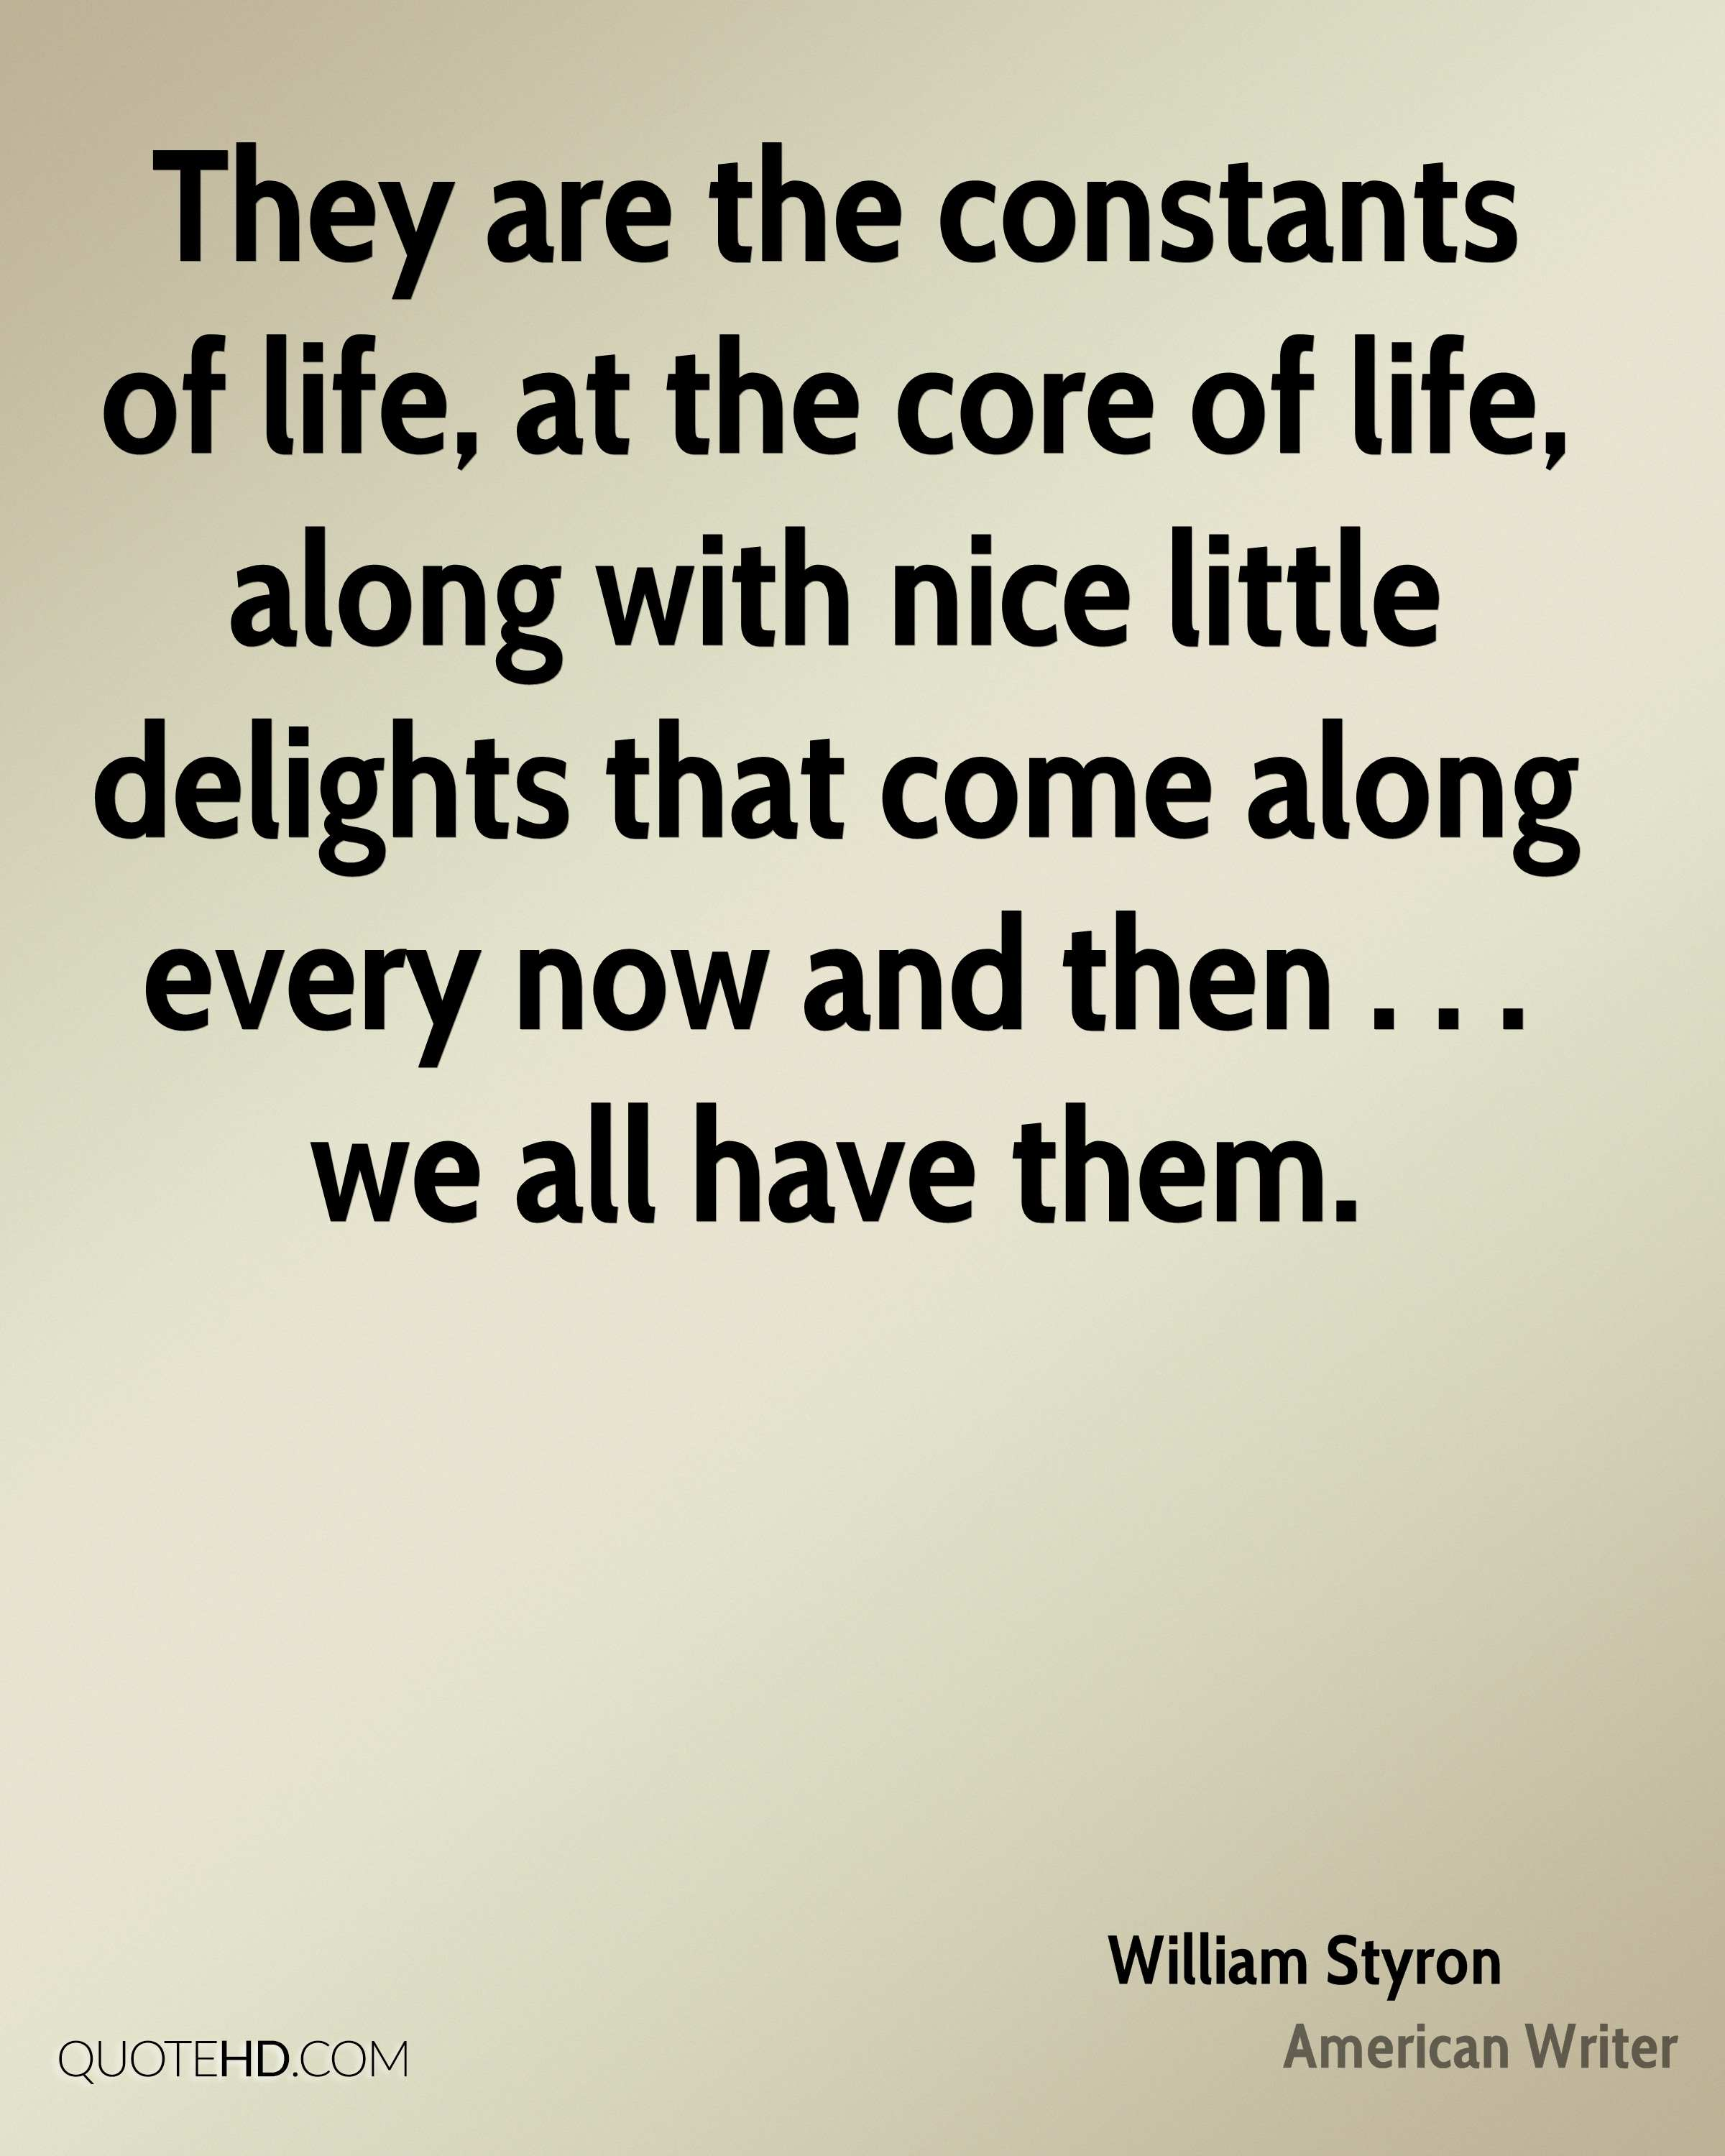 They are the constants of life, at the core of life, along with nice little delights that come along every now and then . . . we all have them.